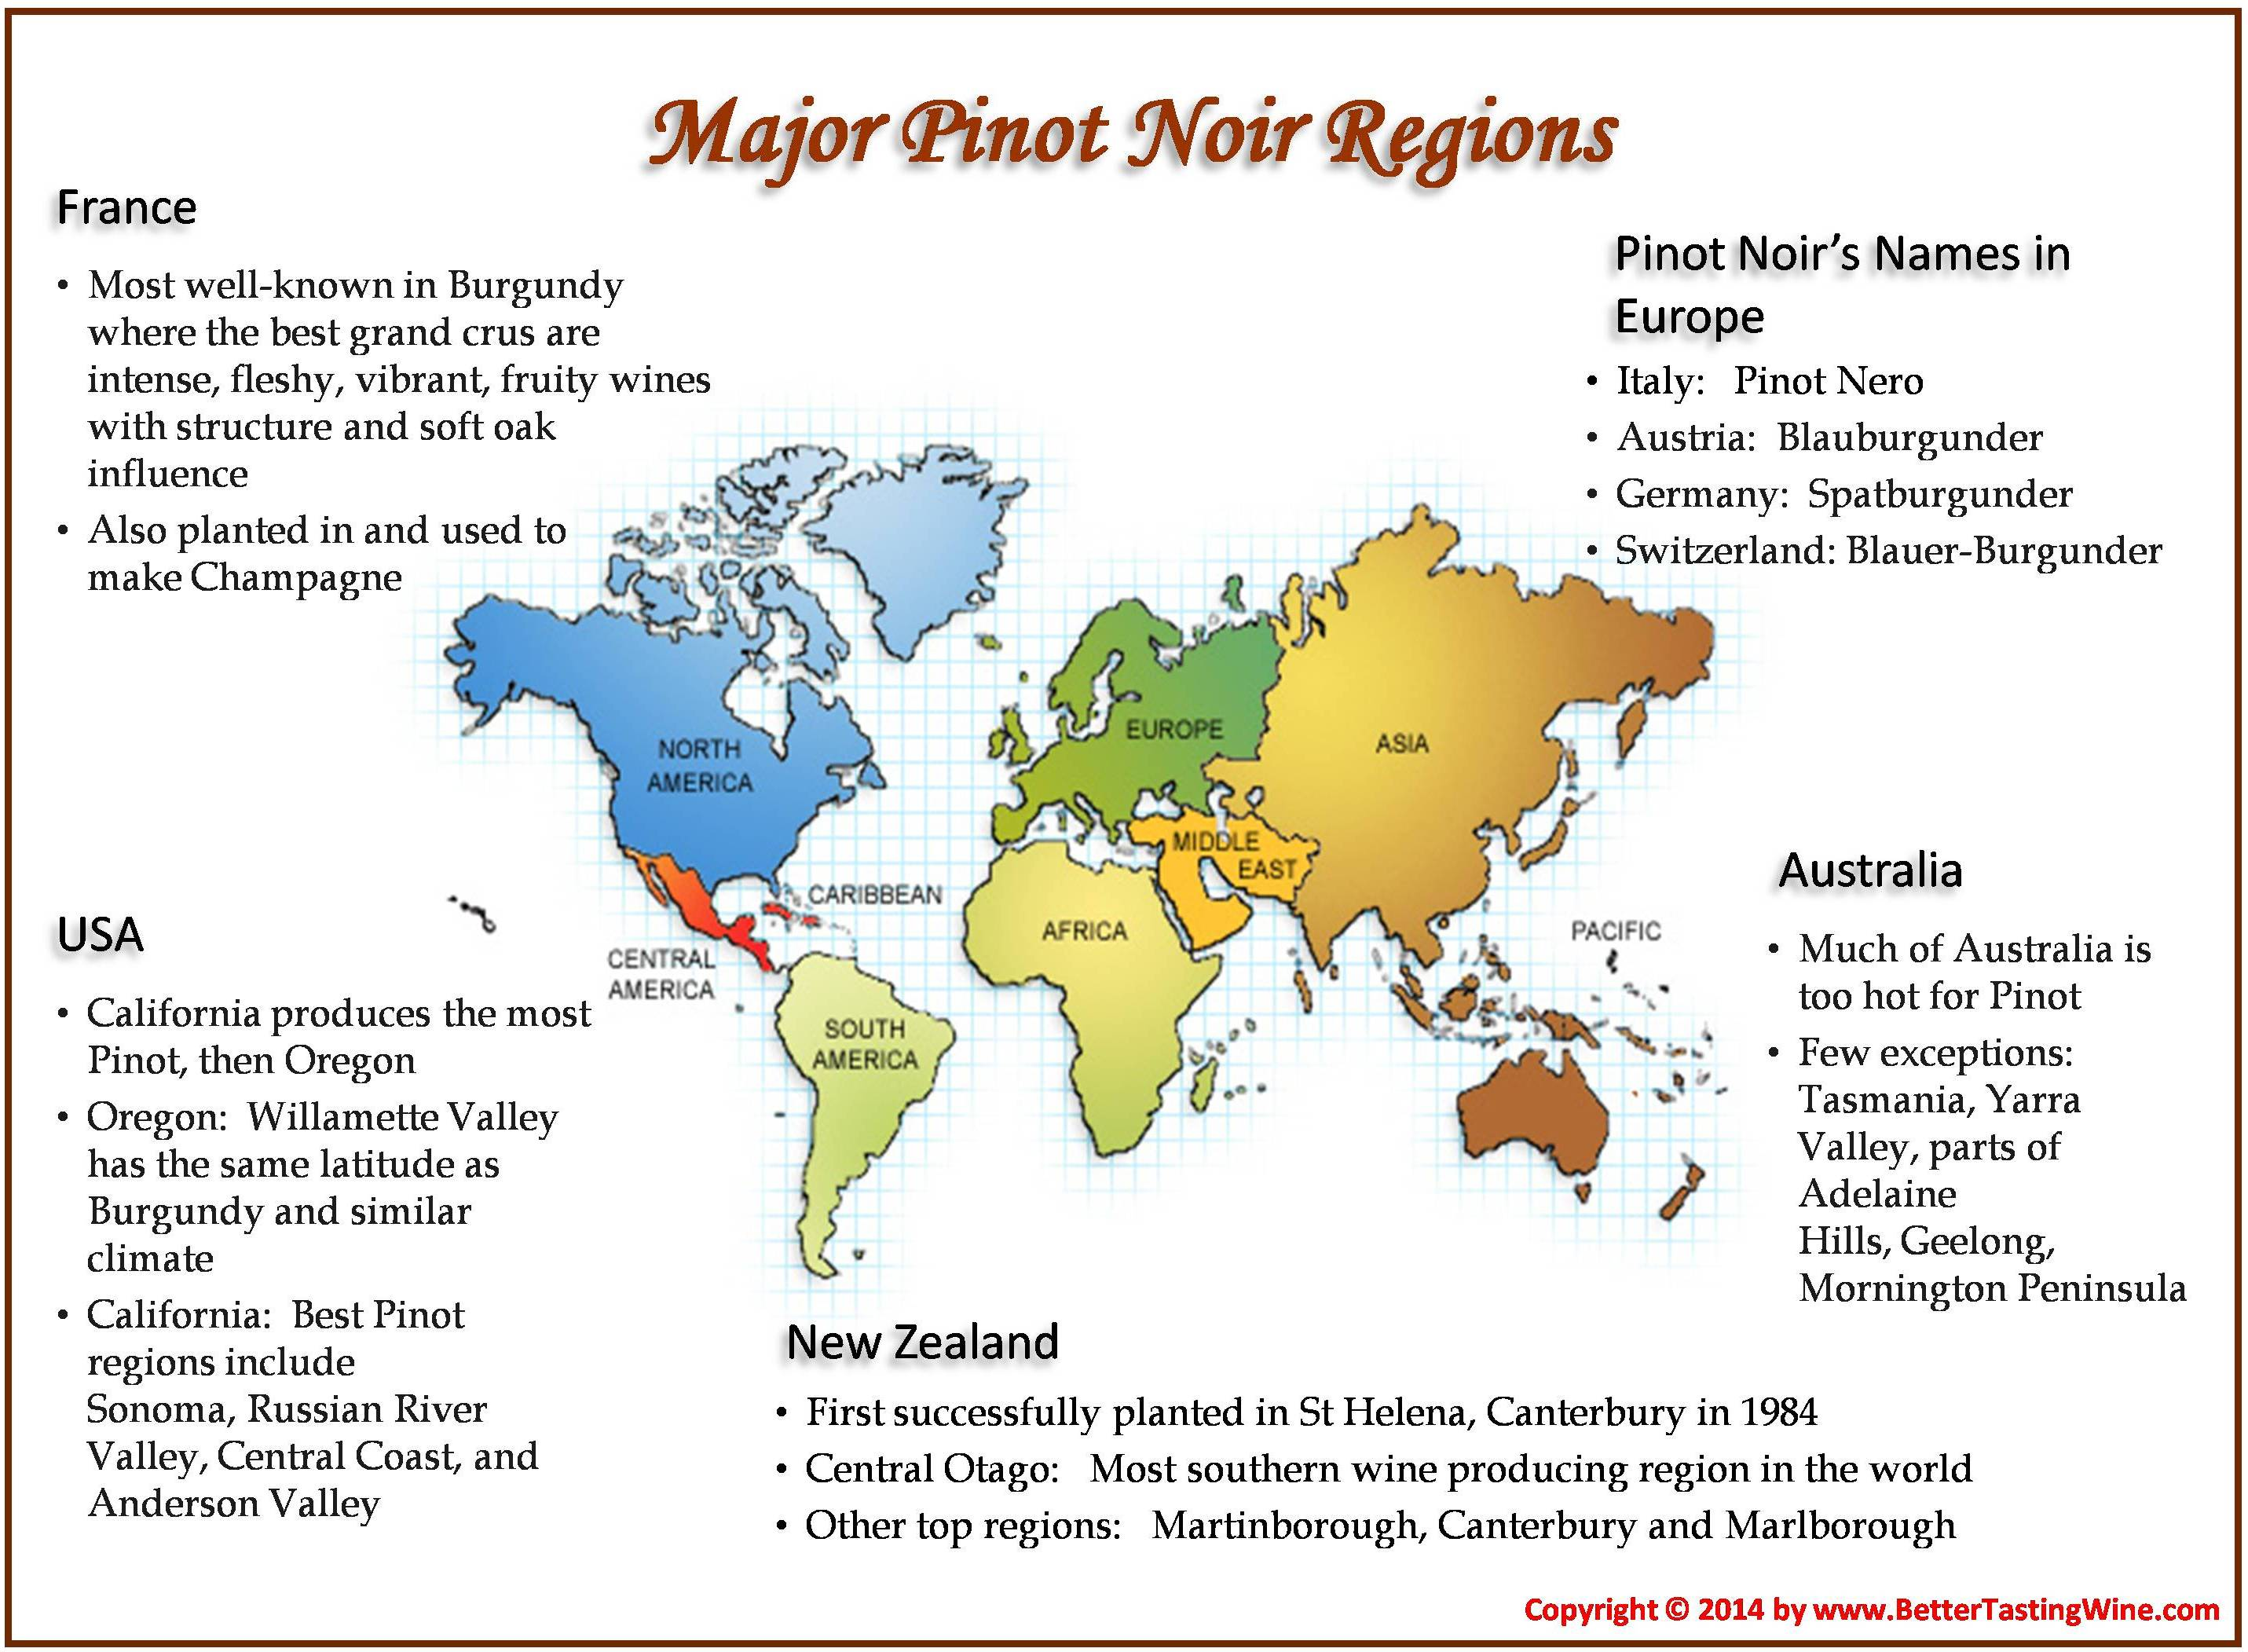 BetterTastingWine: Burgundy vs New World Pinot Noir Tasting ... on world history map, world map regions of the world, sonoma wine region map, south africa wine region map, hungary wine region map, world wine production map, world regions realms map, geography world regions map, world best red wine, world food map, world europe map, 49th parallel on map, california wine map, world new zealand map, world vintage map, world cultural regions map, world oregon map, world soils map, germany wine region map, world fashion capitals map,